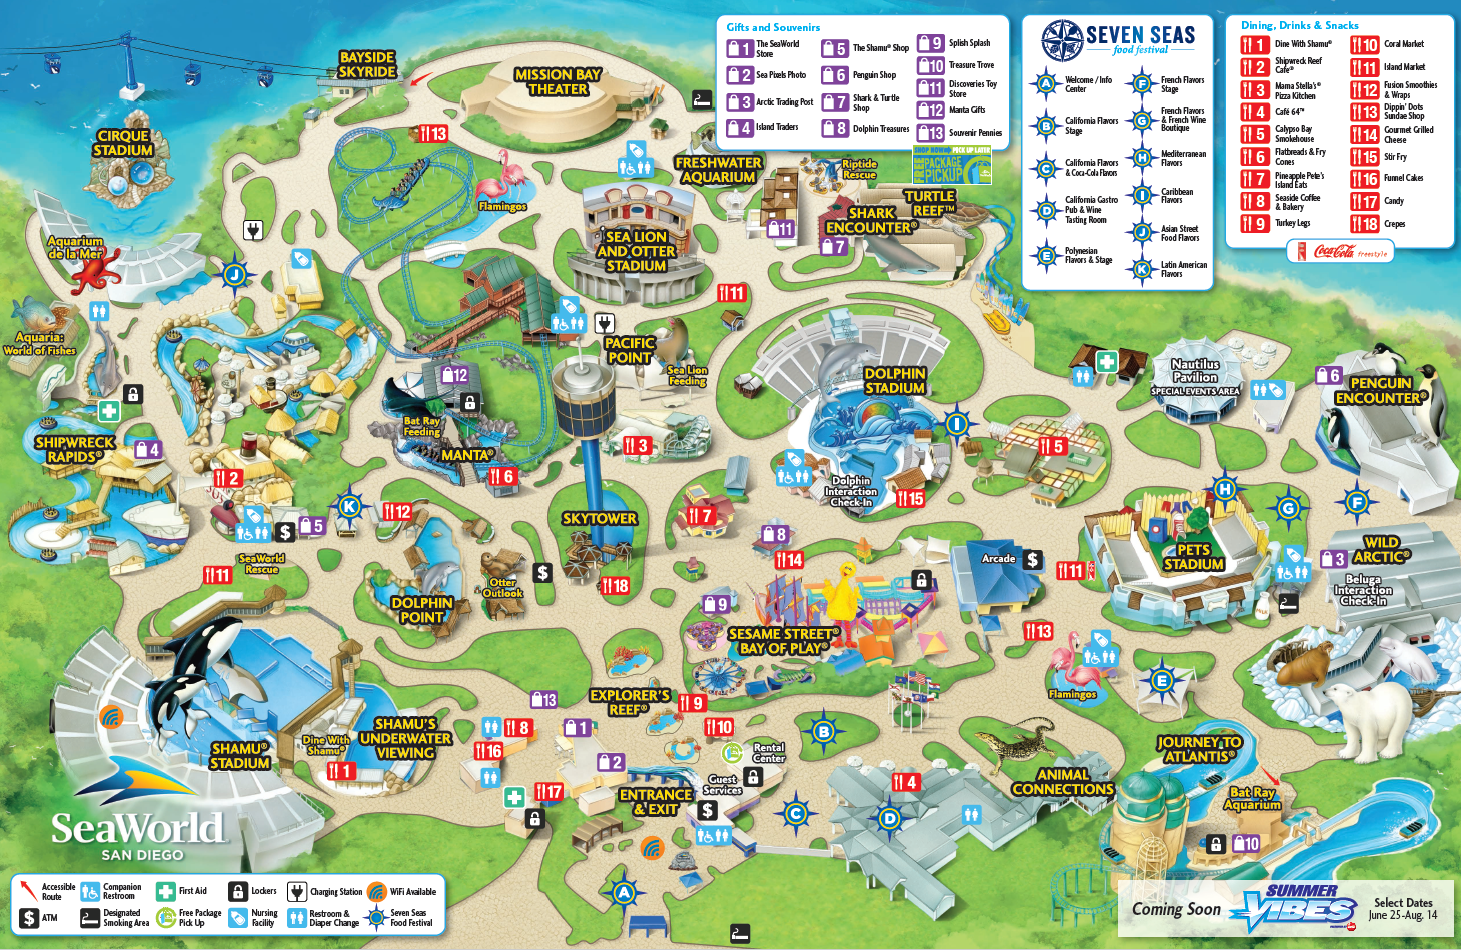 Park Map Seaworld San Diego